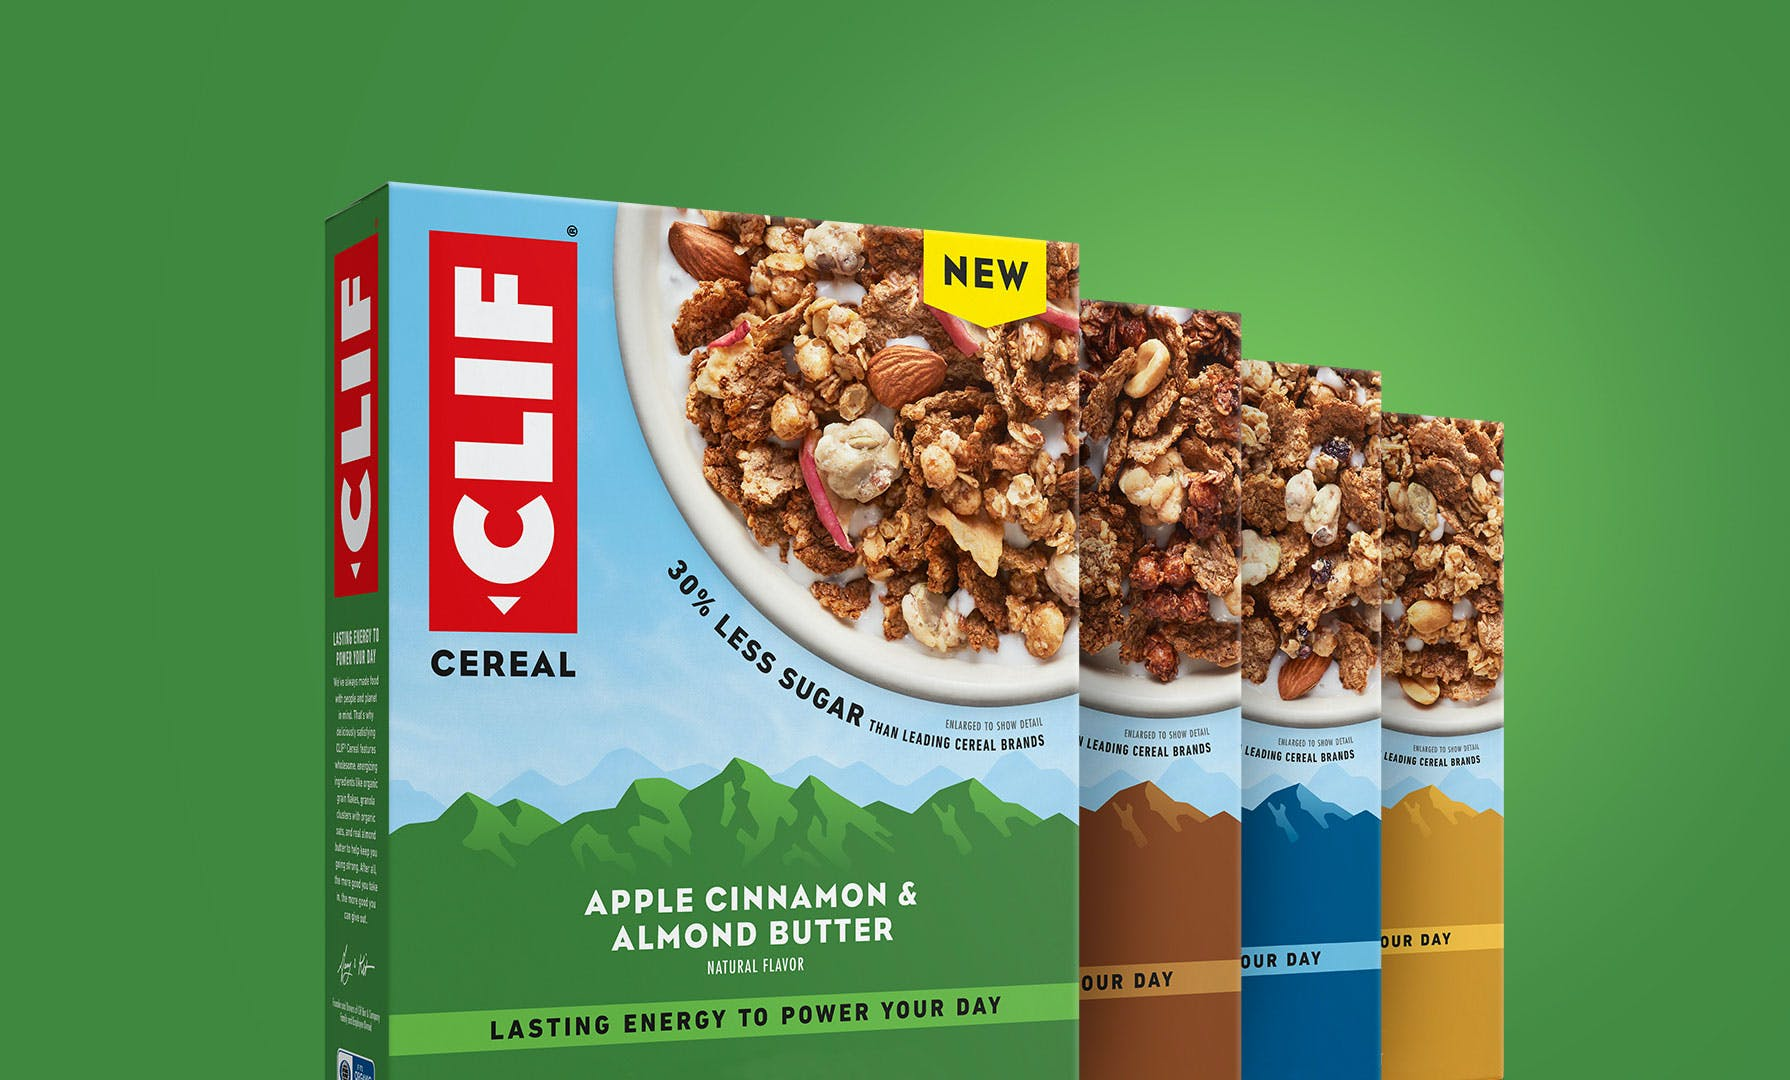 CLIF Cereal 4 new flavors